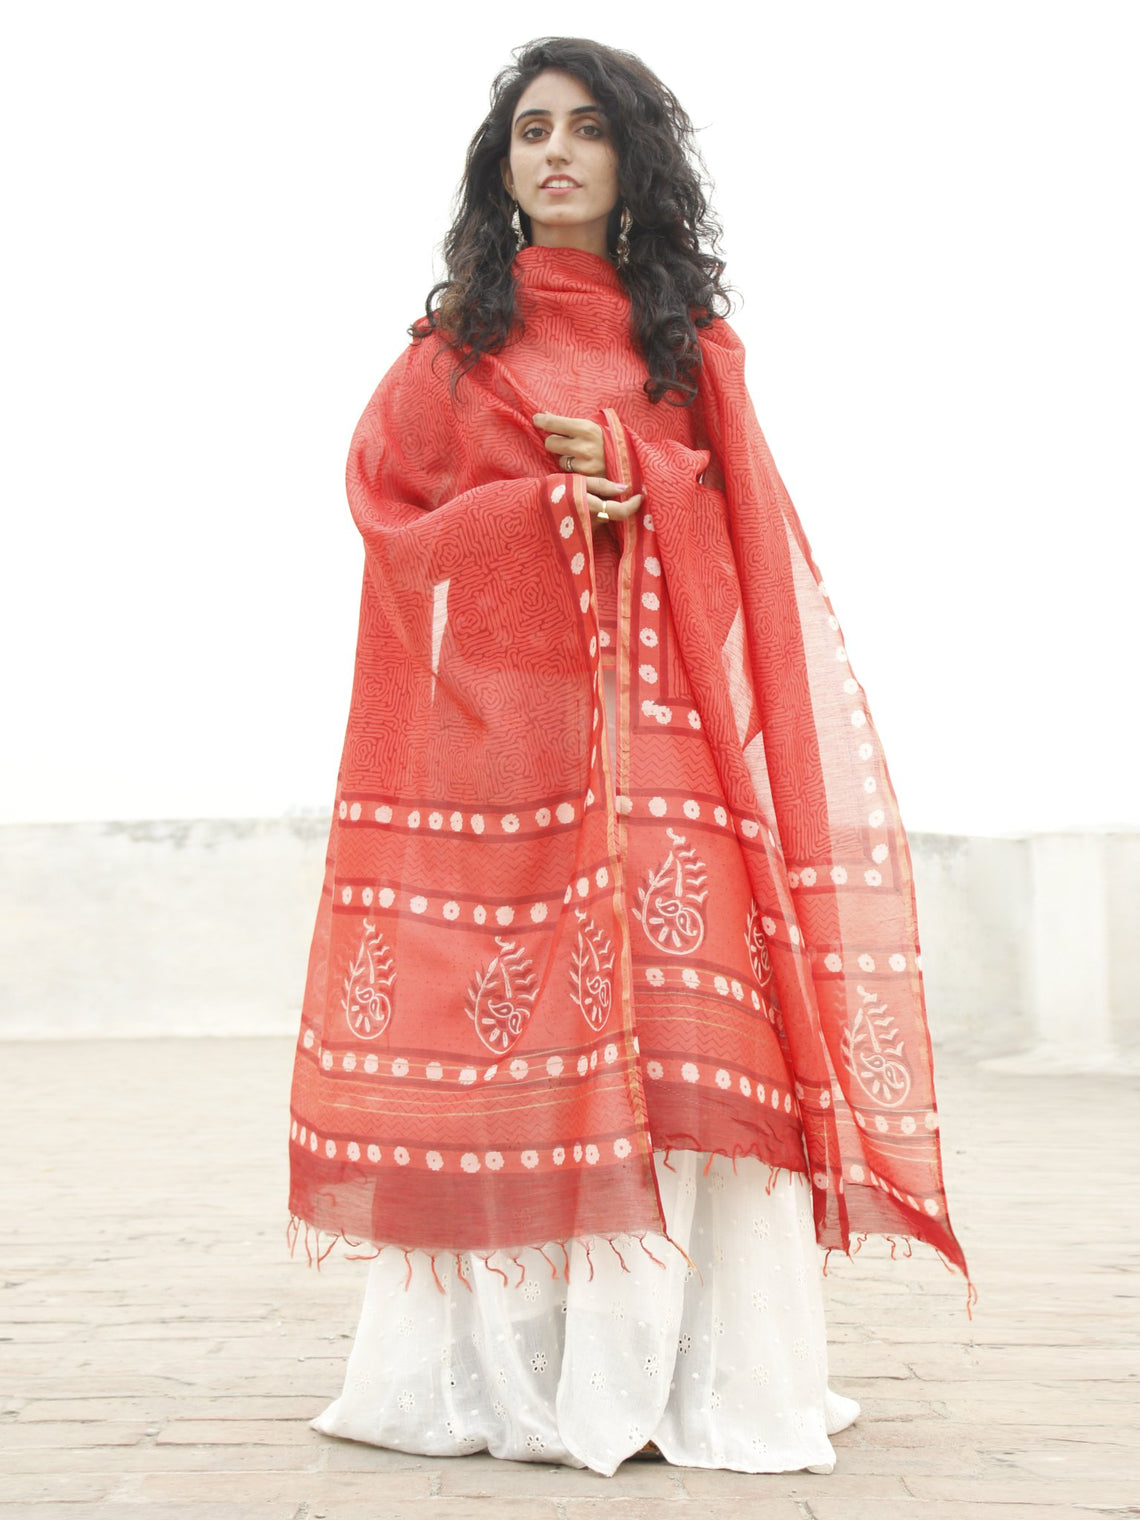 Red Maroon White Chanderi Hand Black Printed & Hand Painted Dupatta - D04170218